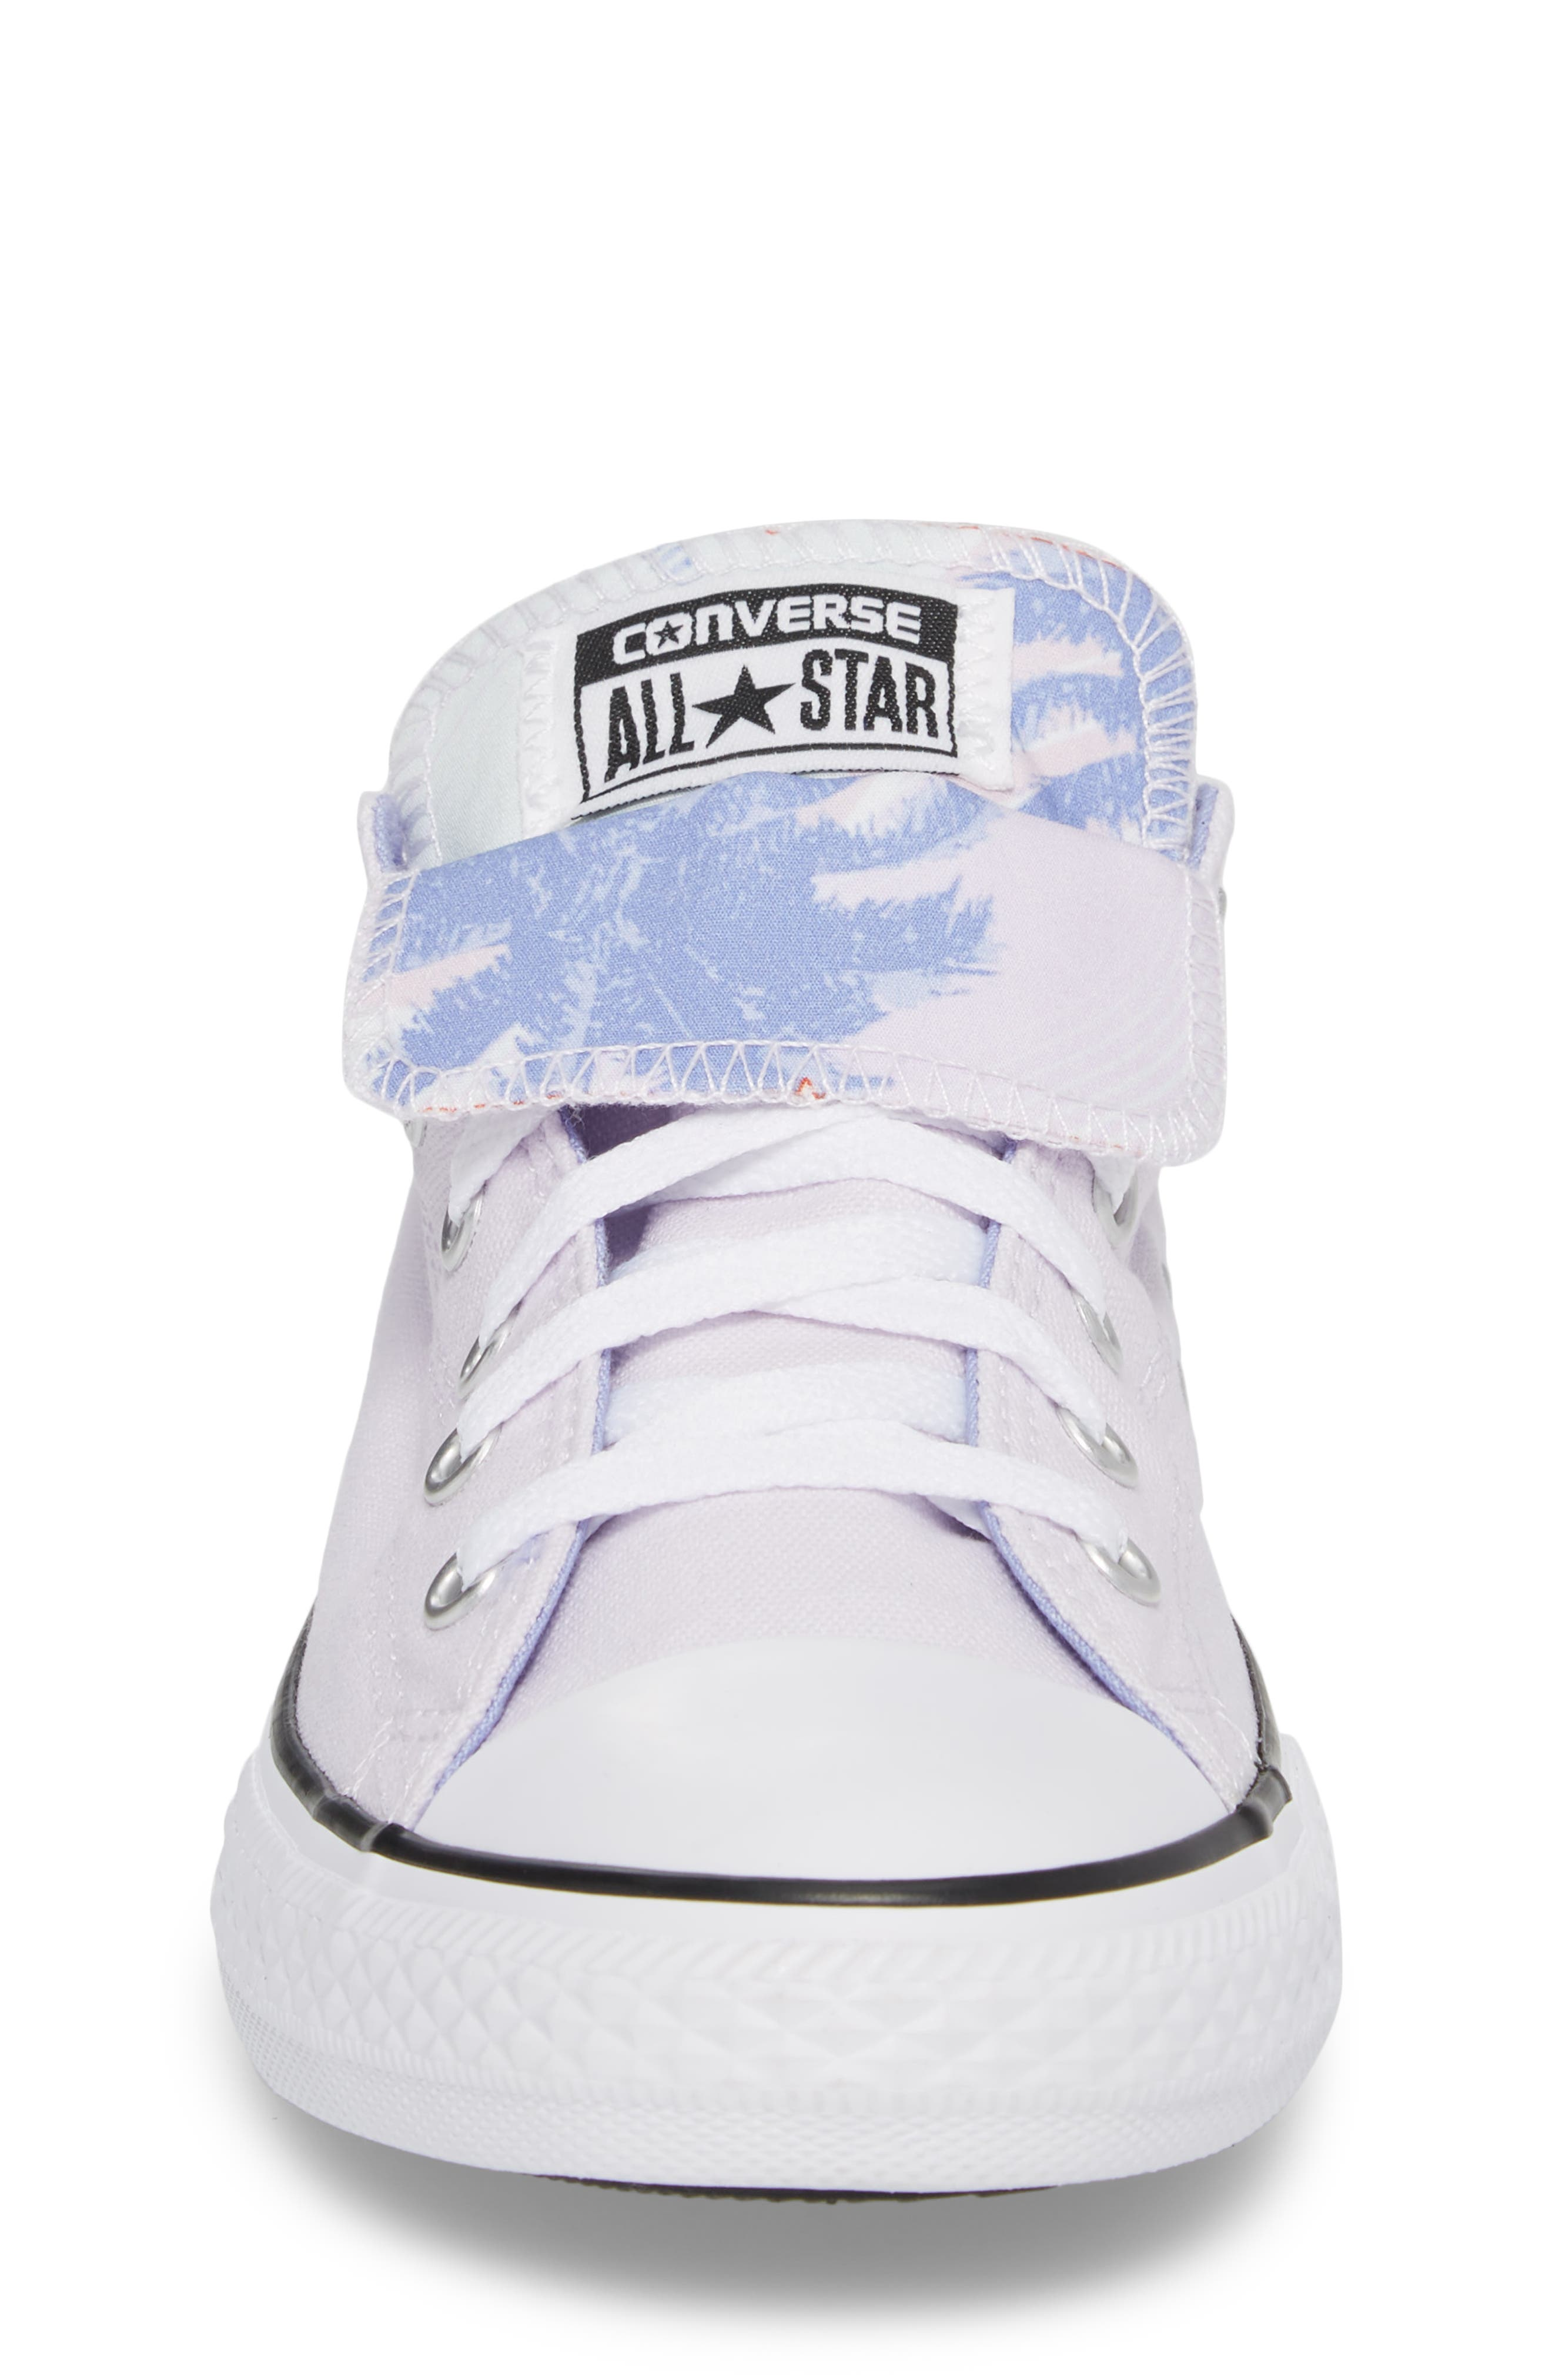 Chuck Taylor<sup>®</sup> All Star<sup>®</sup> Palm Tree Double Tongue Low Top Sneaker,                             Alternate thumbnail 4, color,                             551